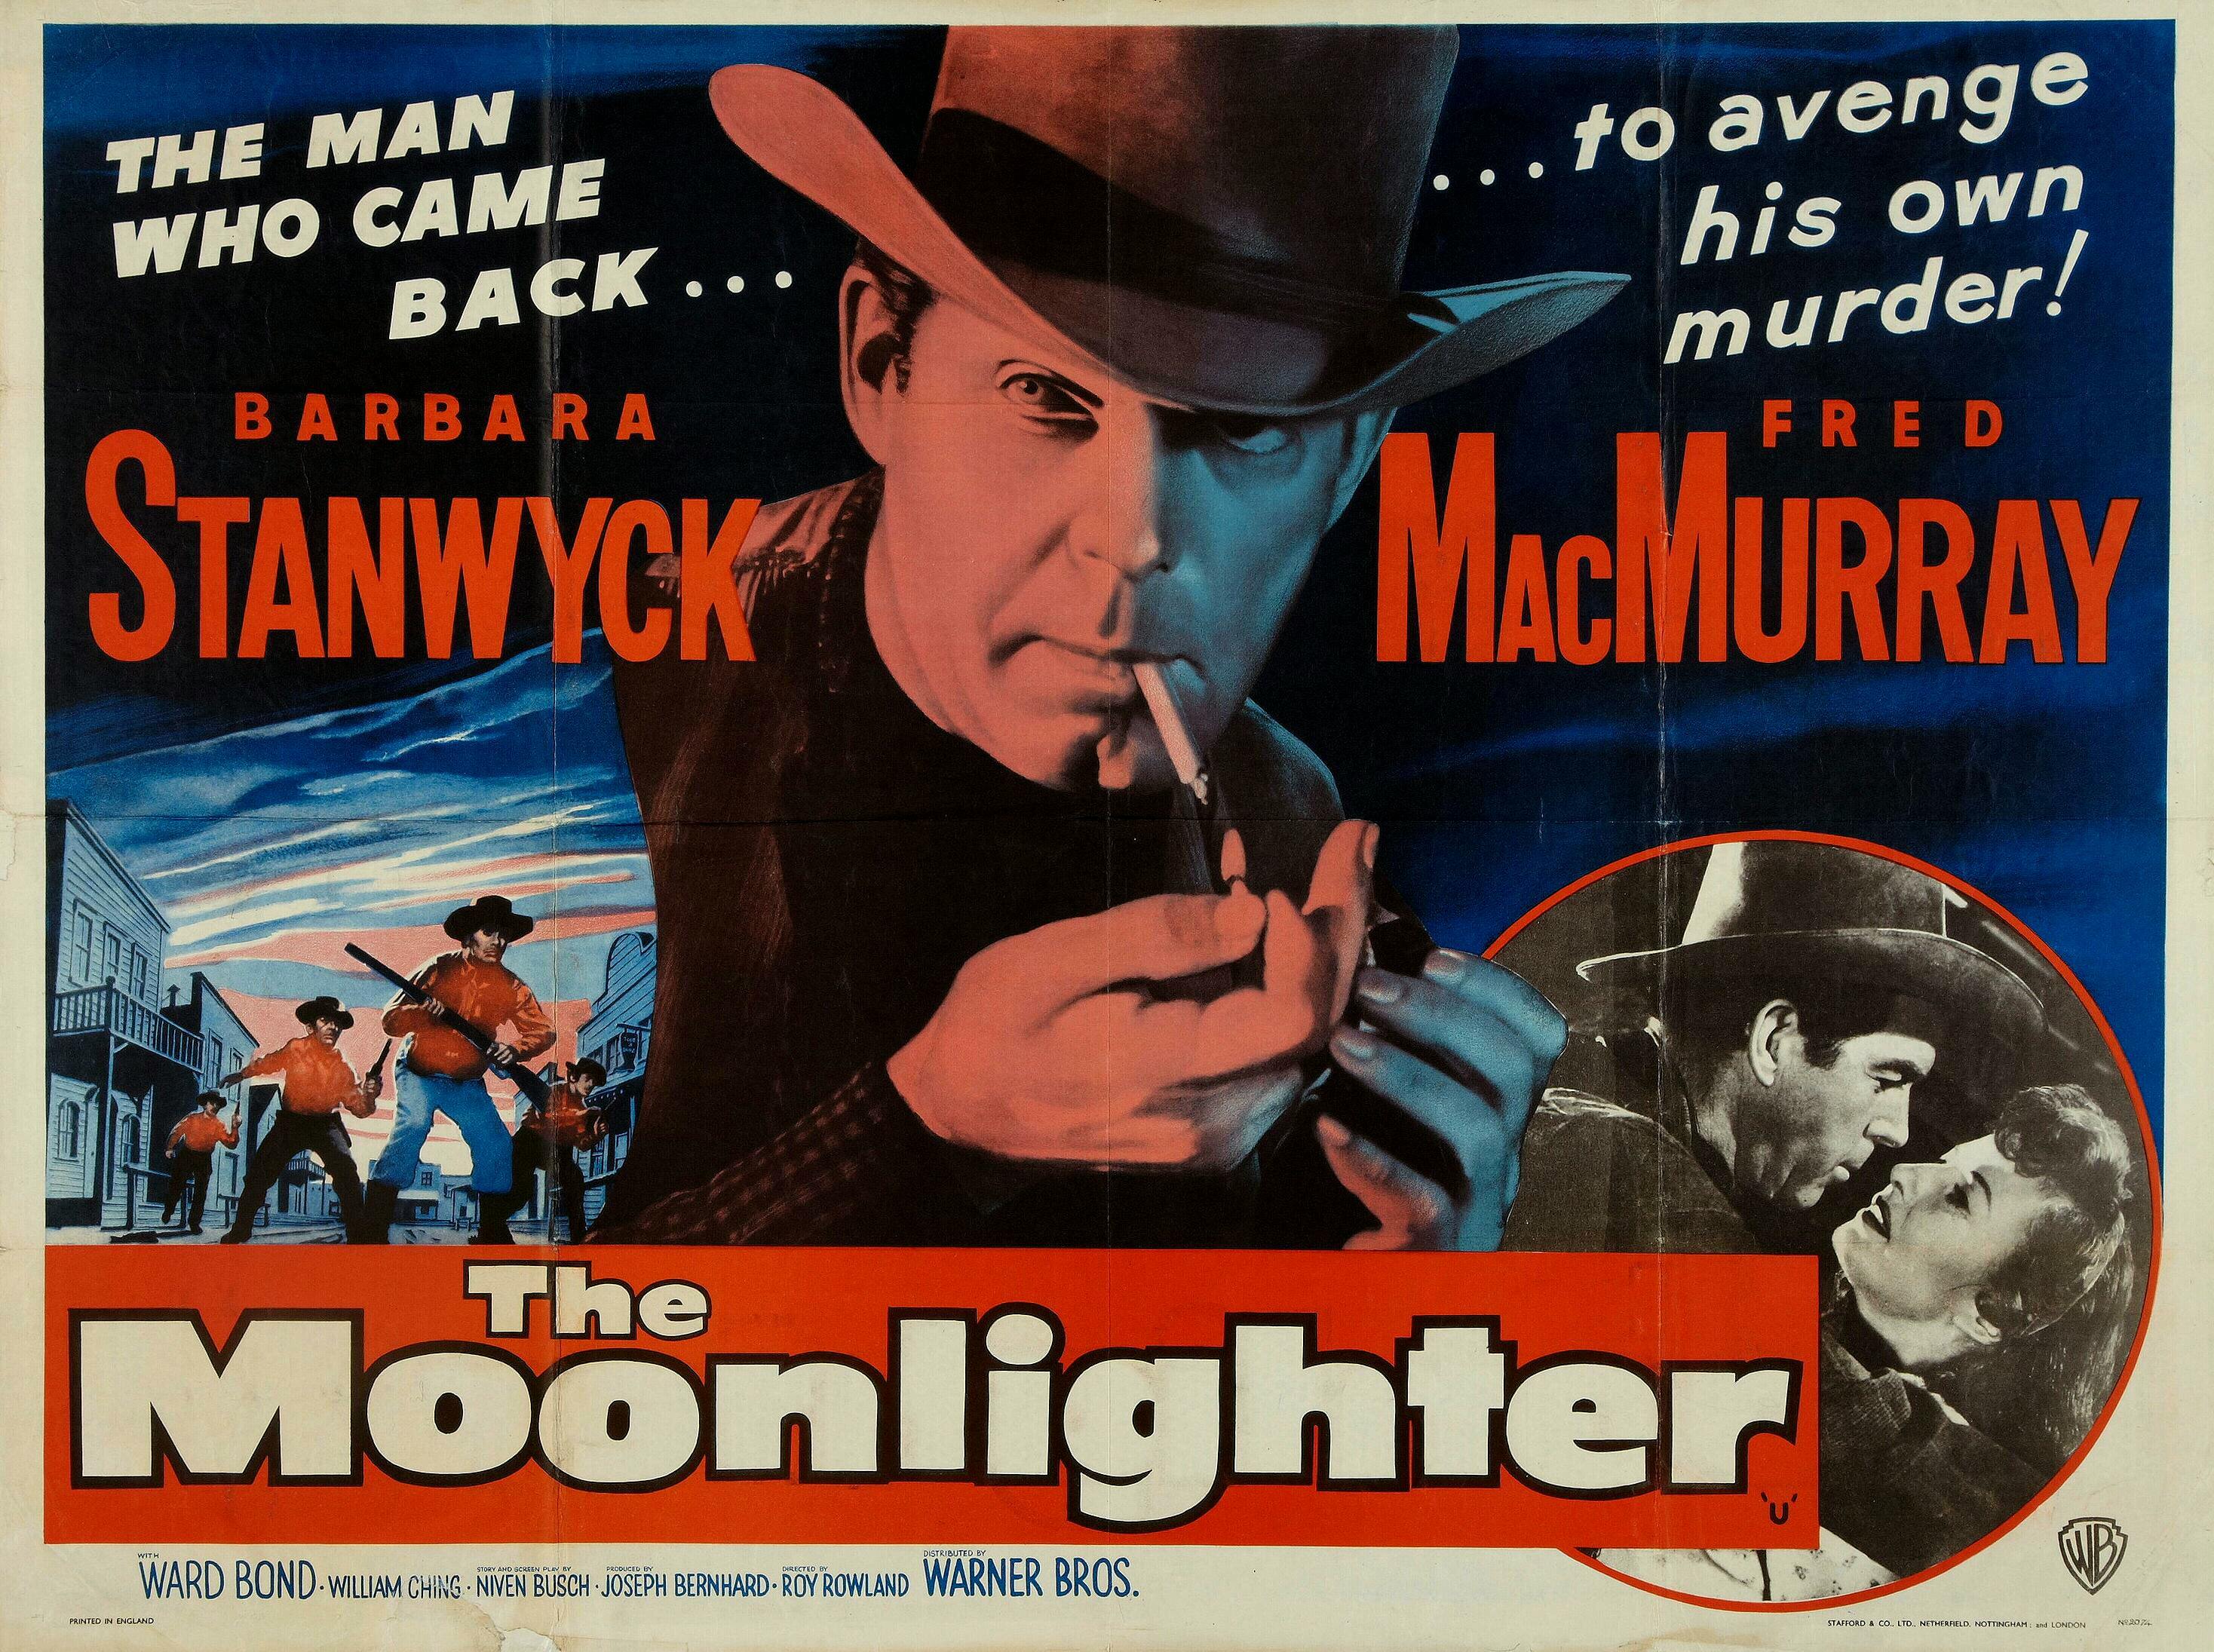 Barbara Stanwyck and Fred MacMurray in The Moonlighter (1953)